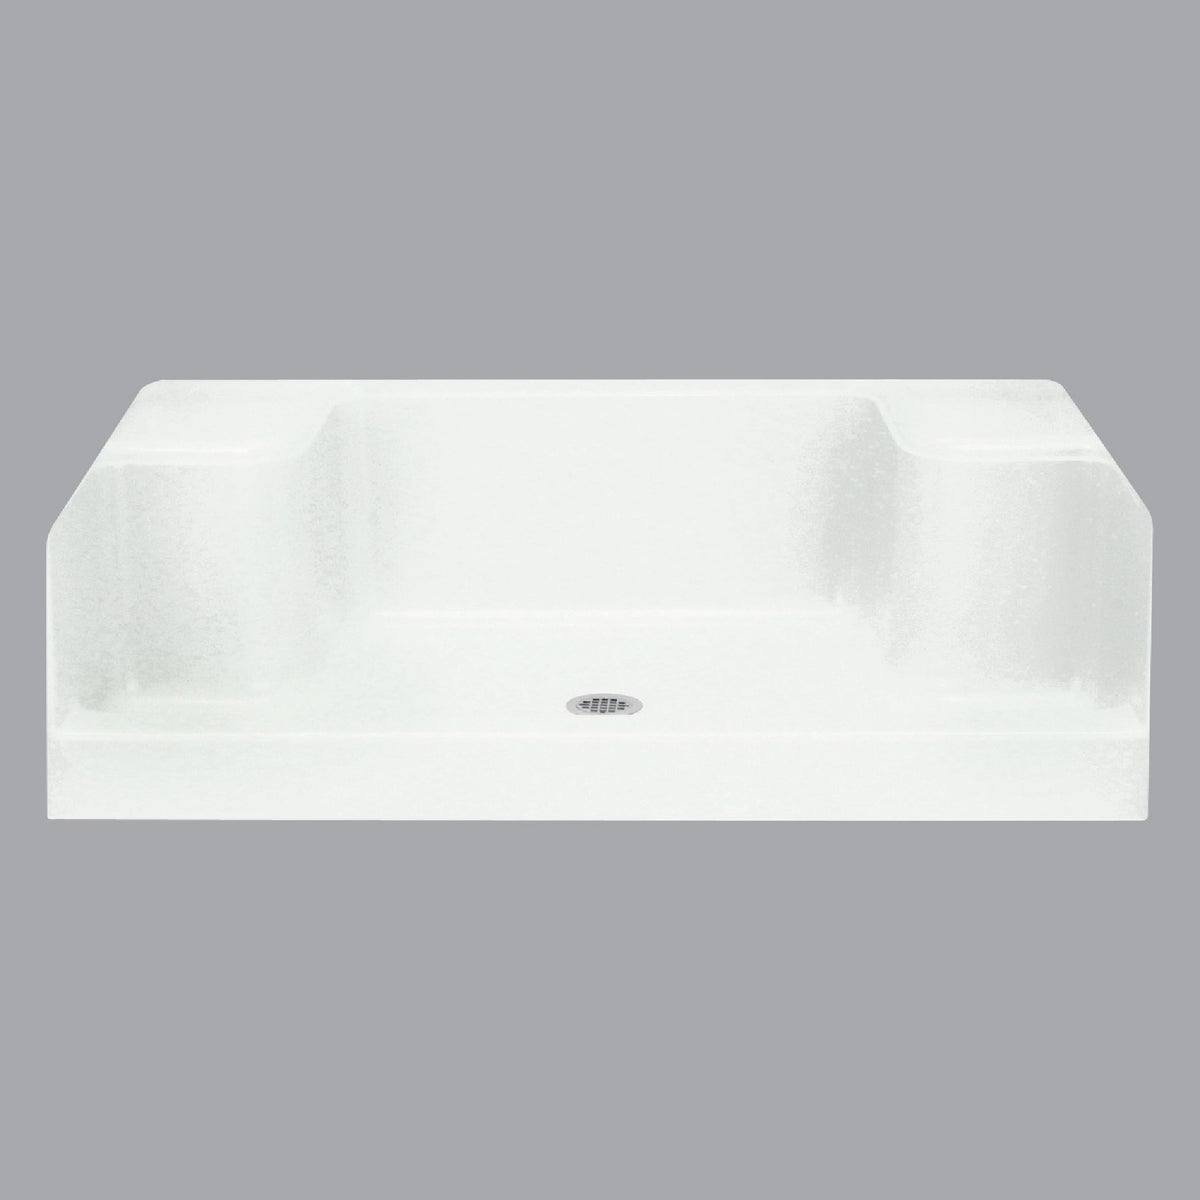 "4 PK 60"" WHT SHOWER BASE - 62041400-0 by Sterling Pbg/vikrell"